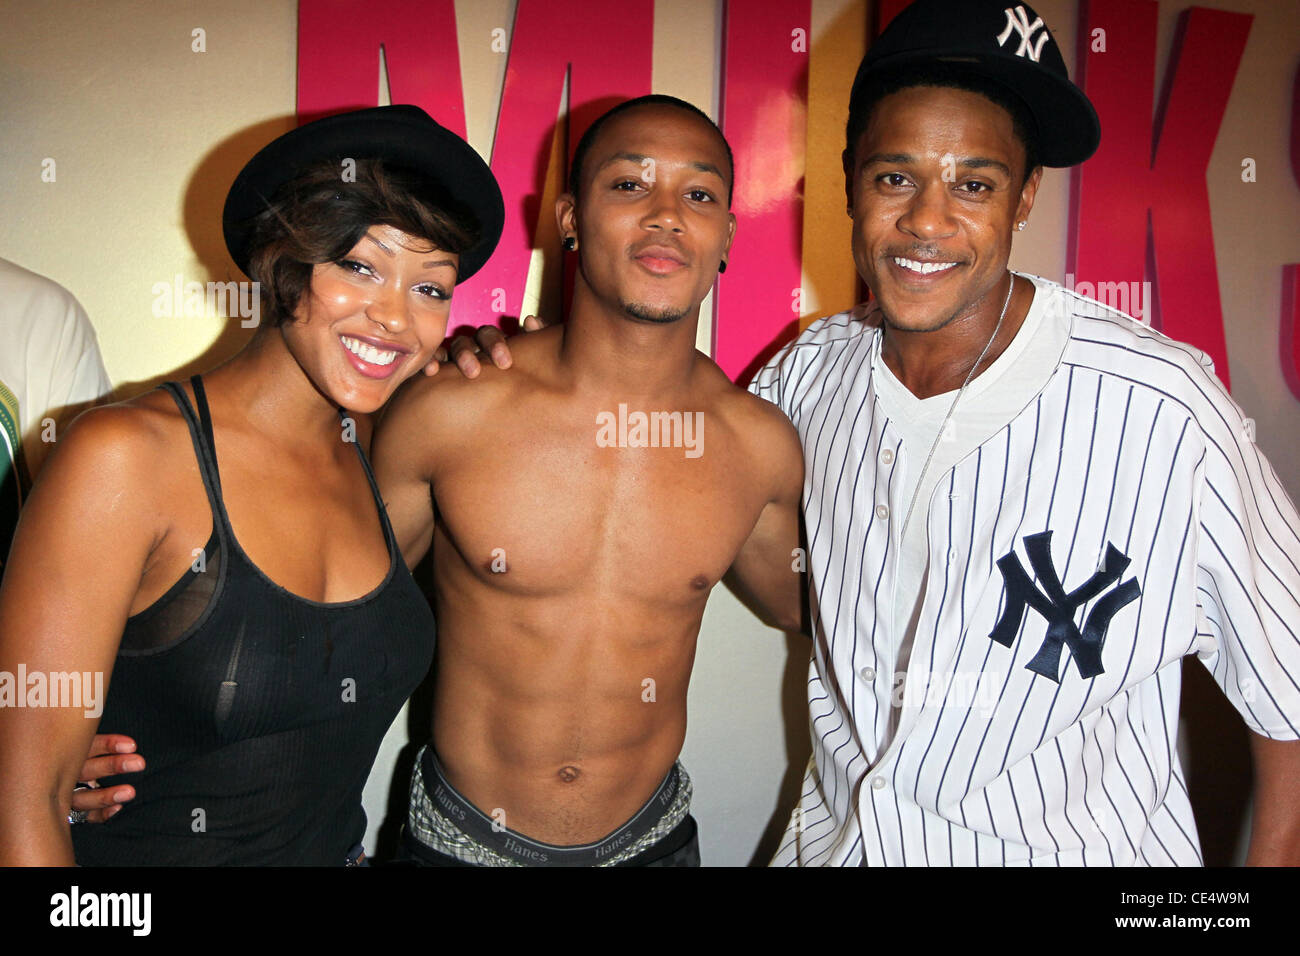 Romeo miller dating meagan good